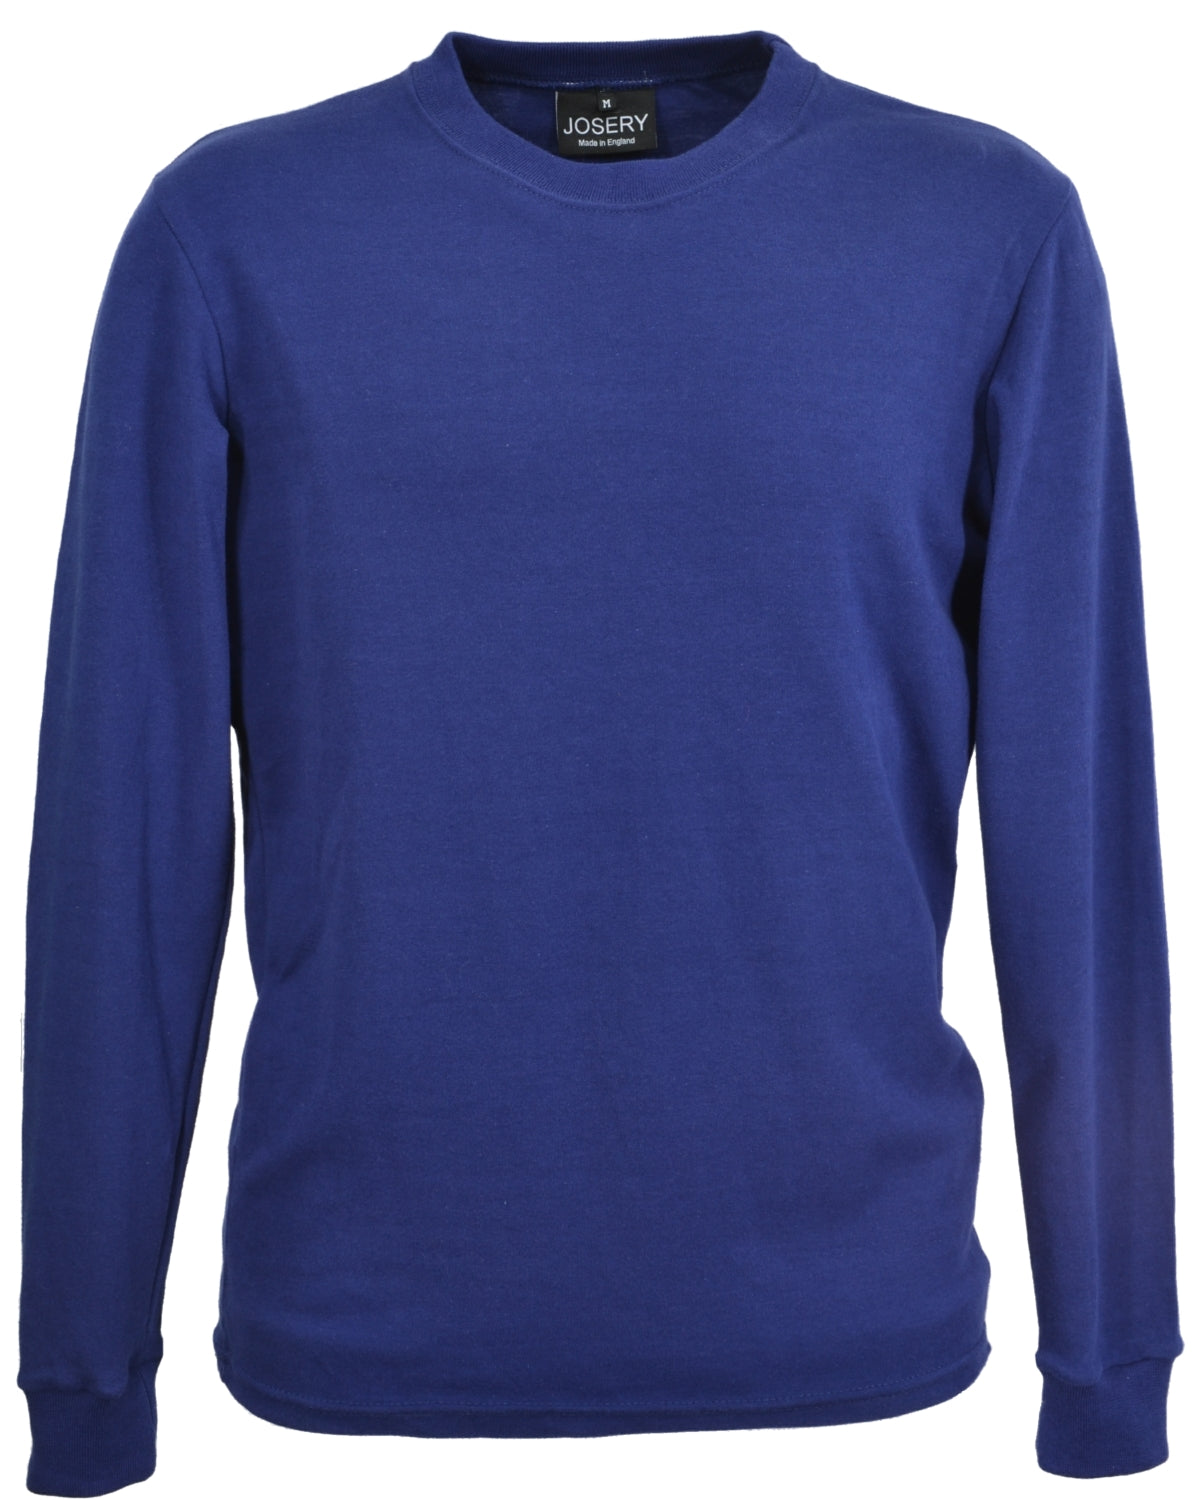 Navy, slim fit, long sleeve men's T-Shirt.    Made in England